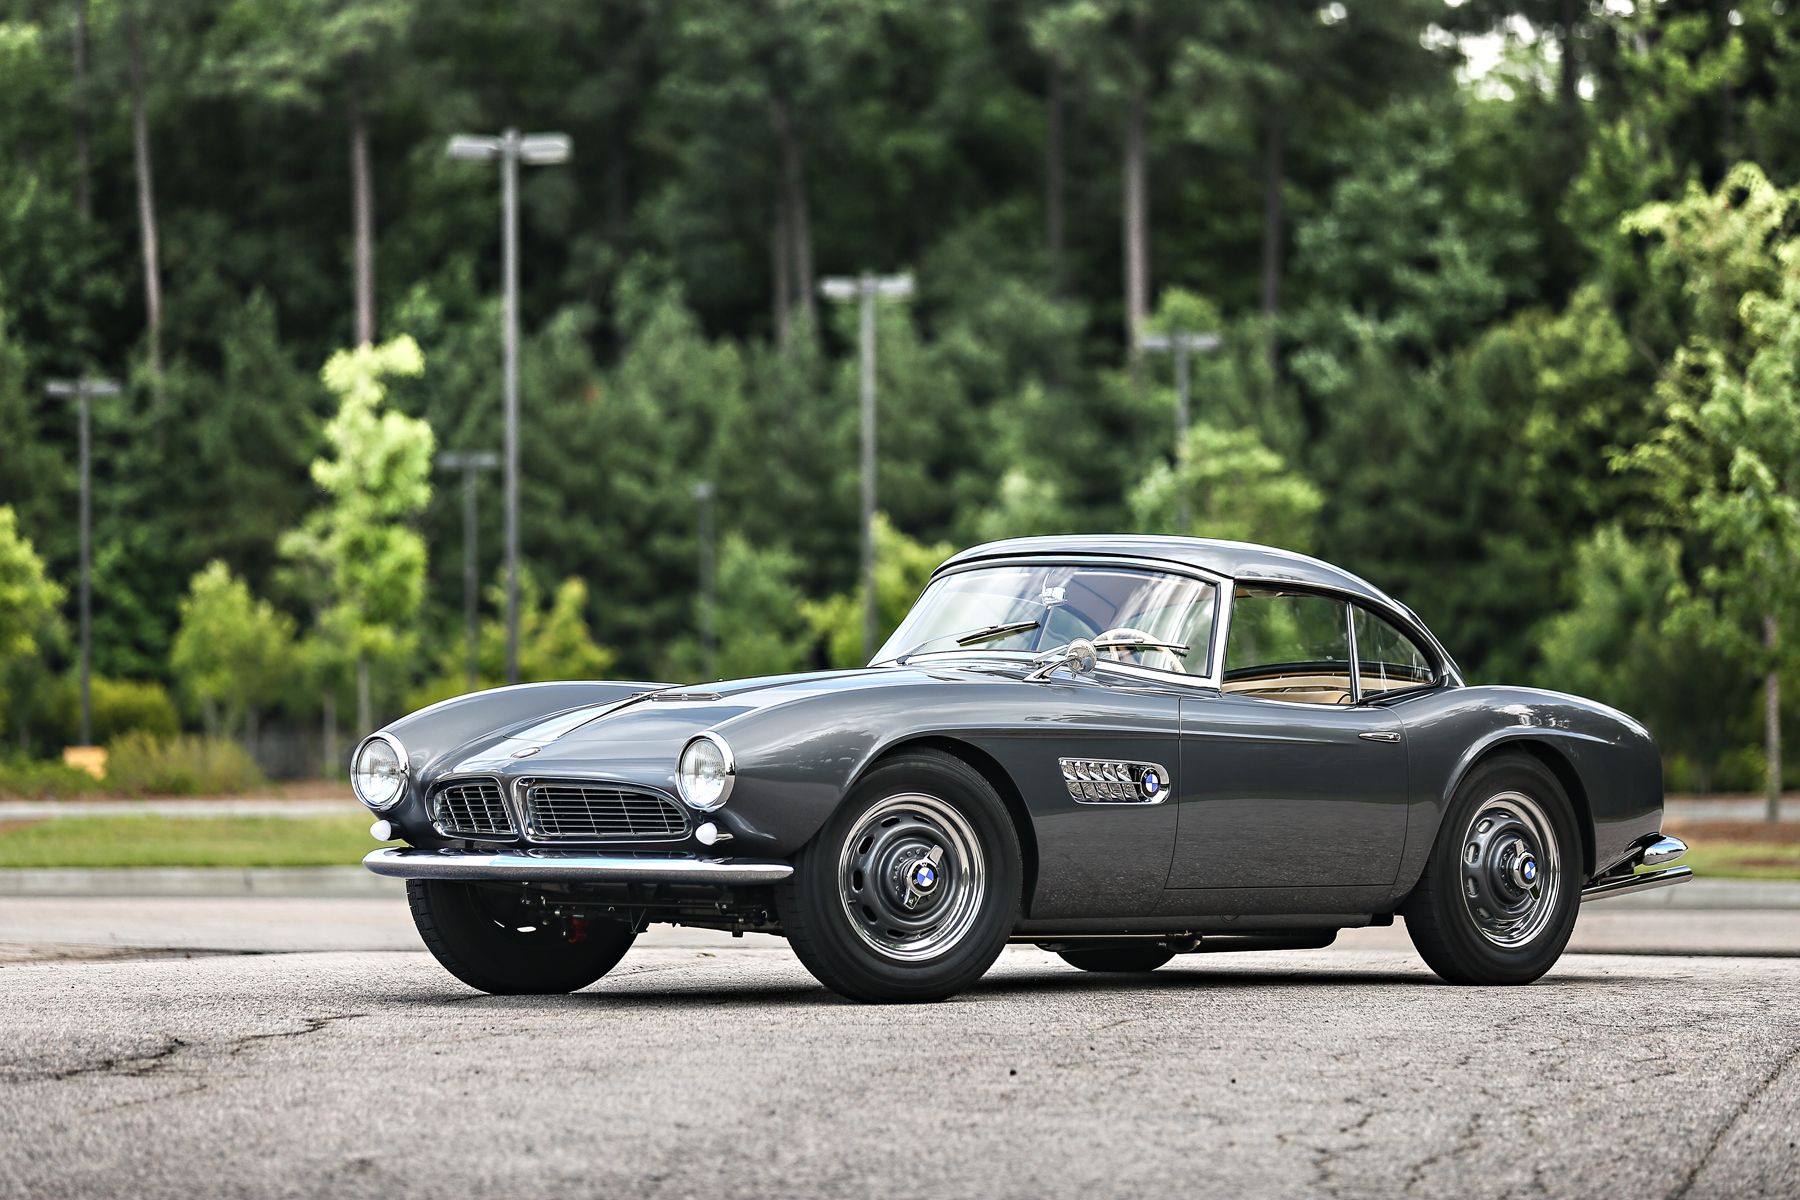 Model Masterpiece Bmw 507 Premier Financial Services